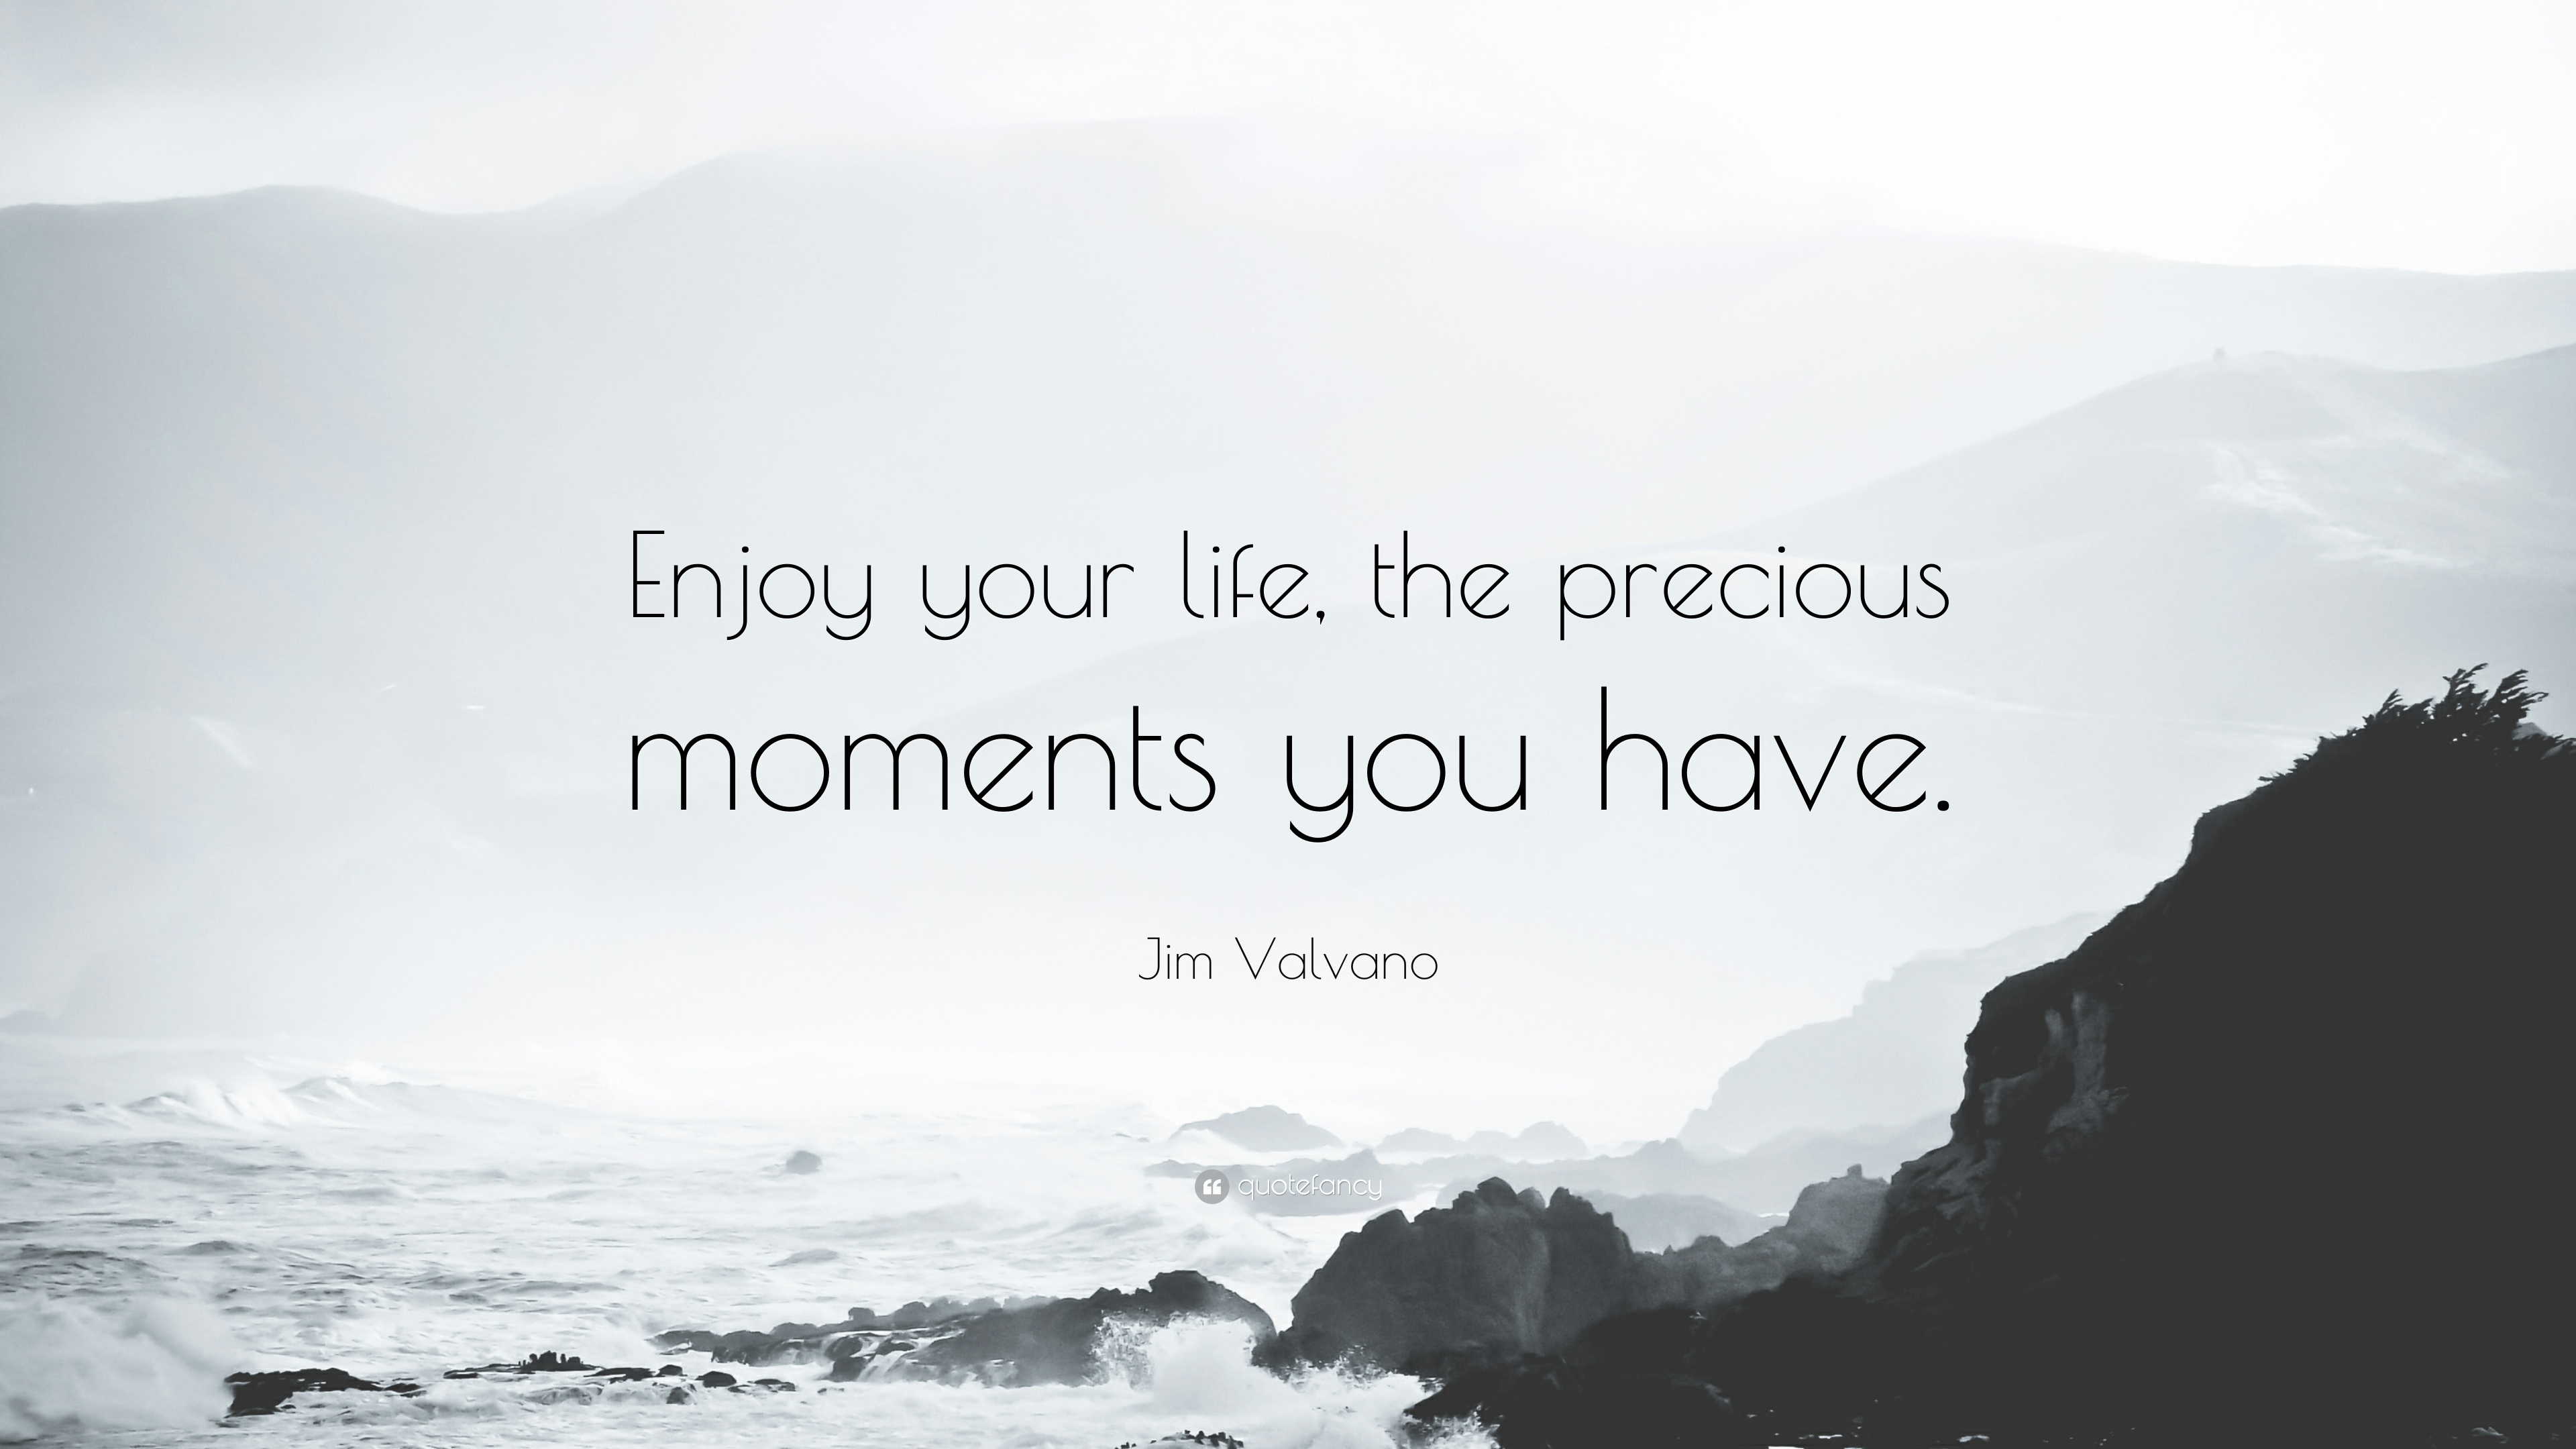 Etonnant Jim Valvano Quote: U201cEnjoy Your Life, The Precious Moments You Have.u201d